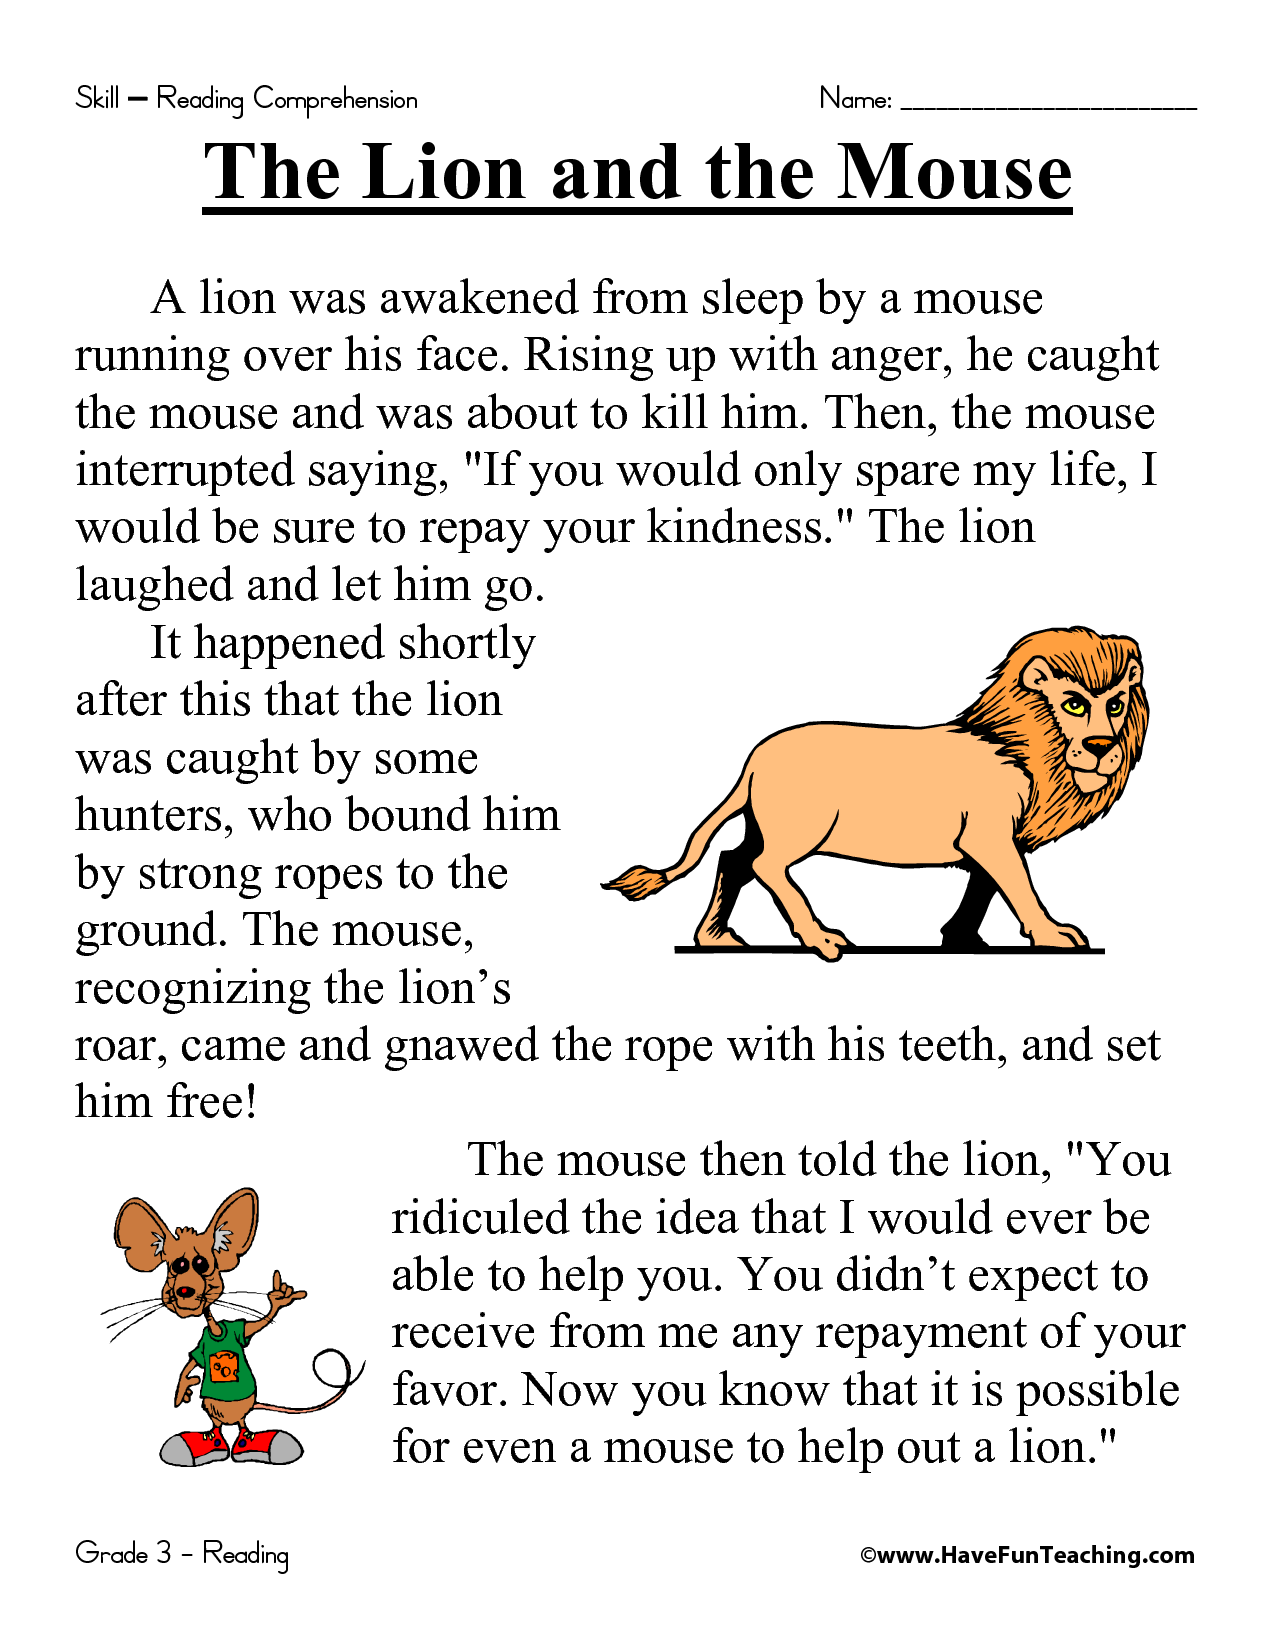 Worksheet 4th Grade Reading Stories first grade reading comprehension worksheets the lion and mouse worksheet